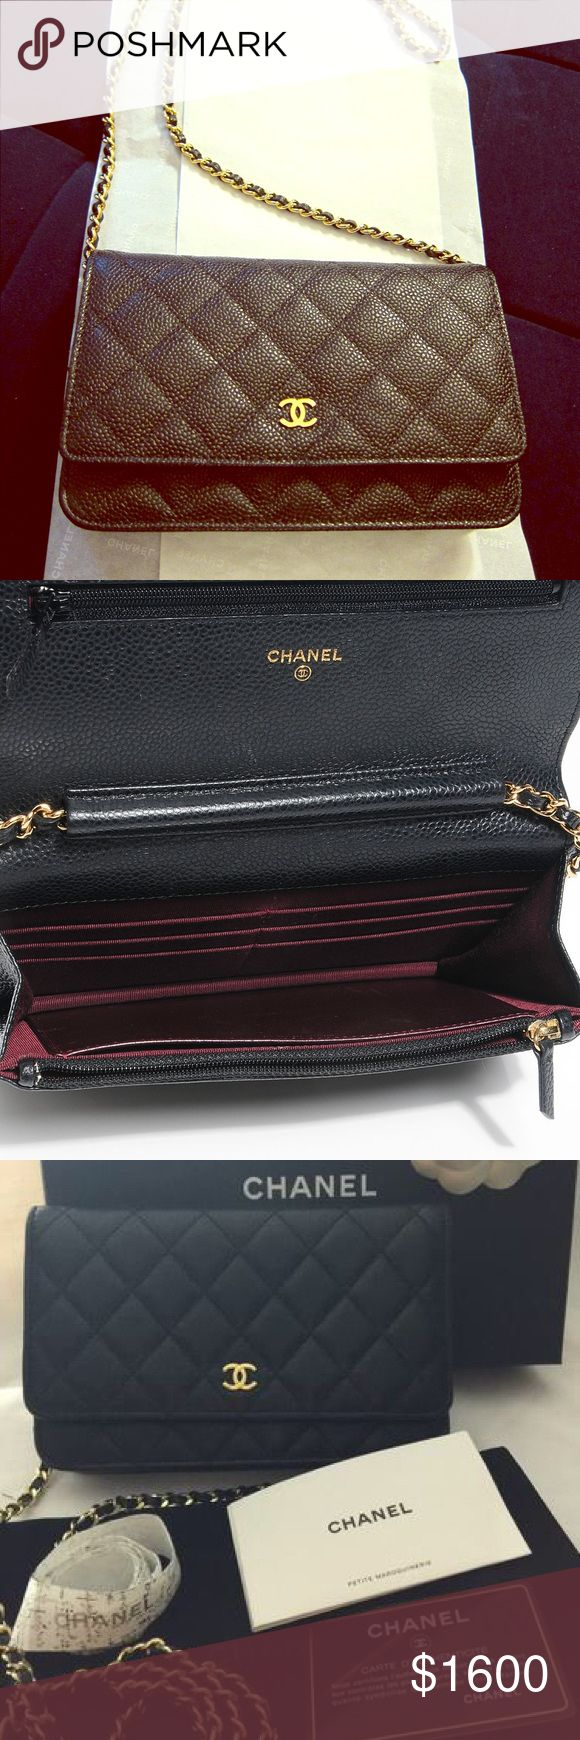 Chanel woc black caviar Auth Chanel woc black caviar gold chain comes with carebooklet and authentication card/ inquire before purchase and no trades CHANEL Bags Mini Bags